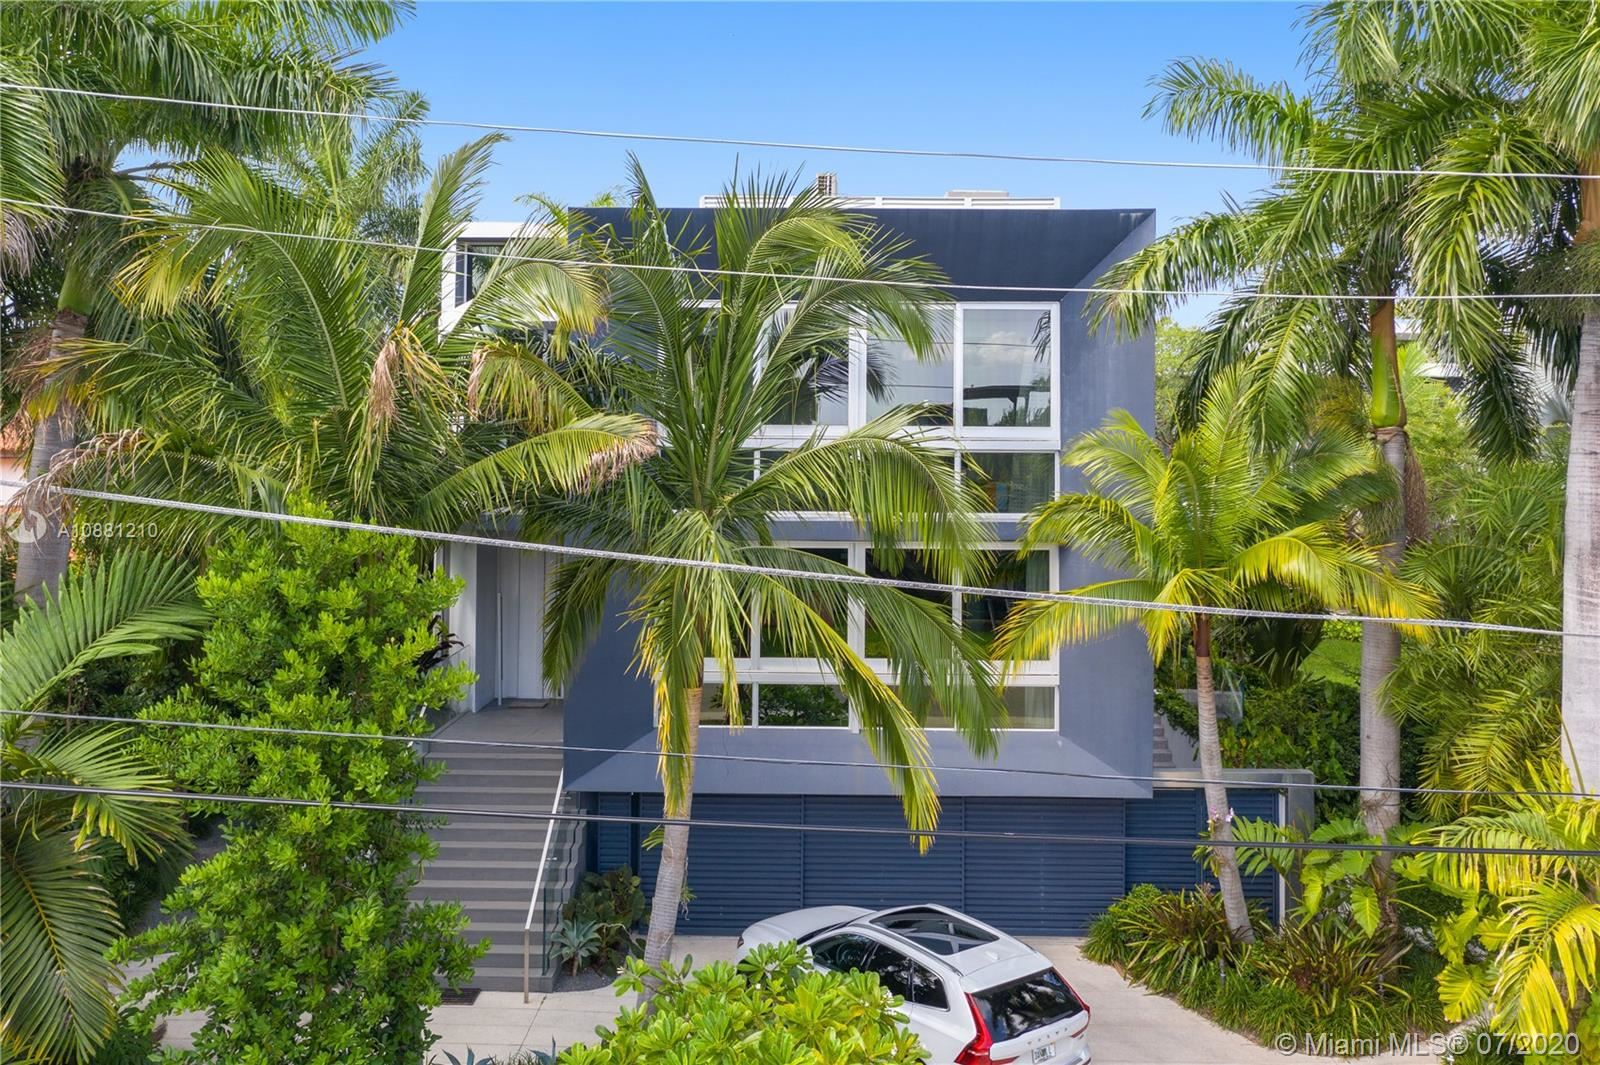 Photo 42 of Listing MLS a10881210 in 370 S Hibiscus Dr Miami Beach FL 33139